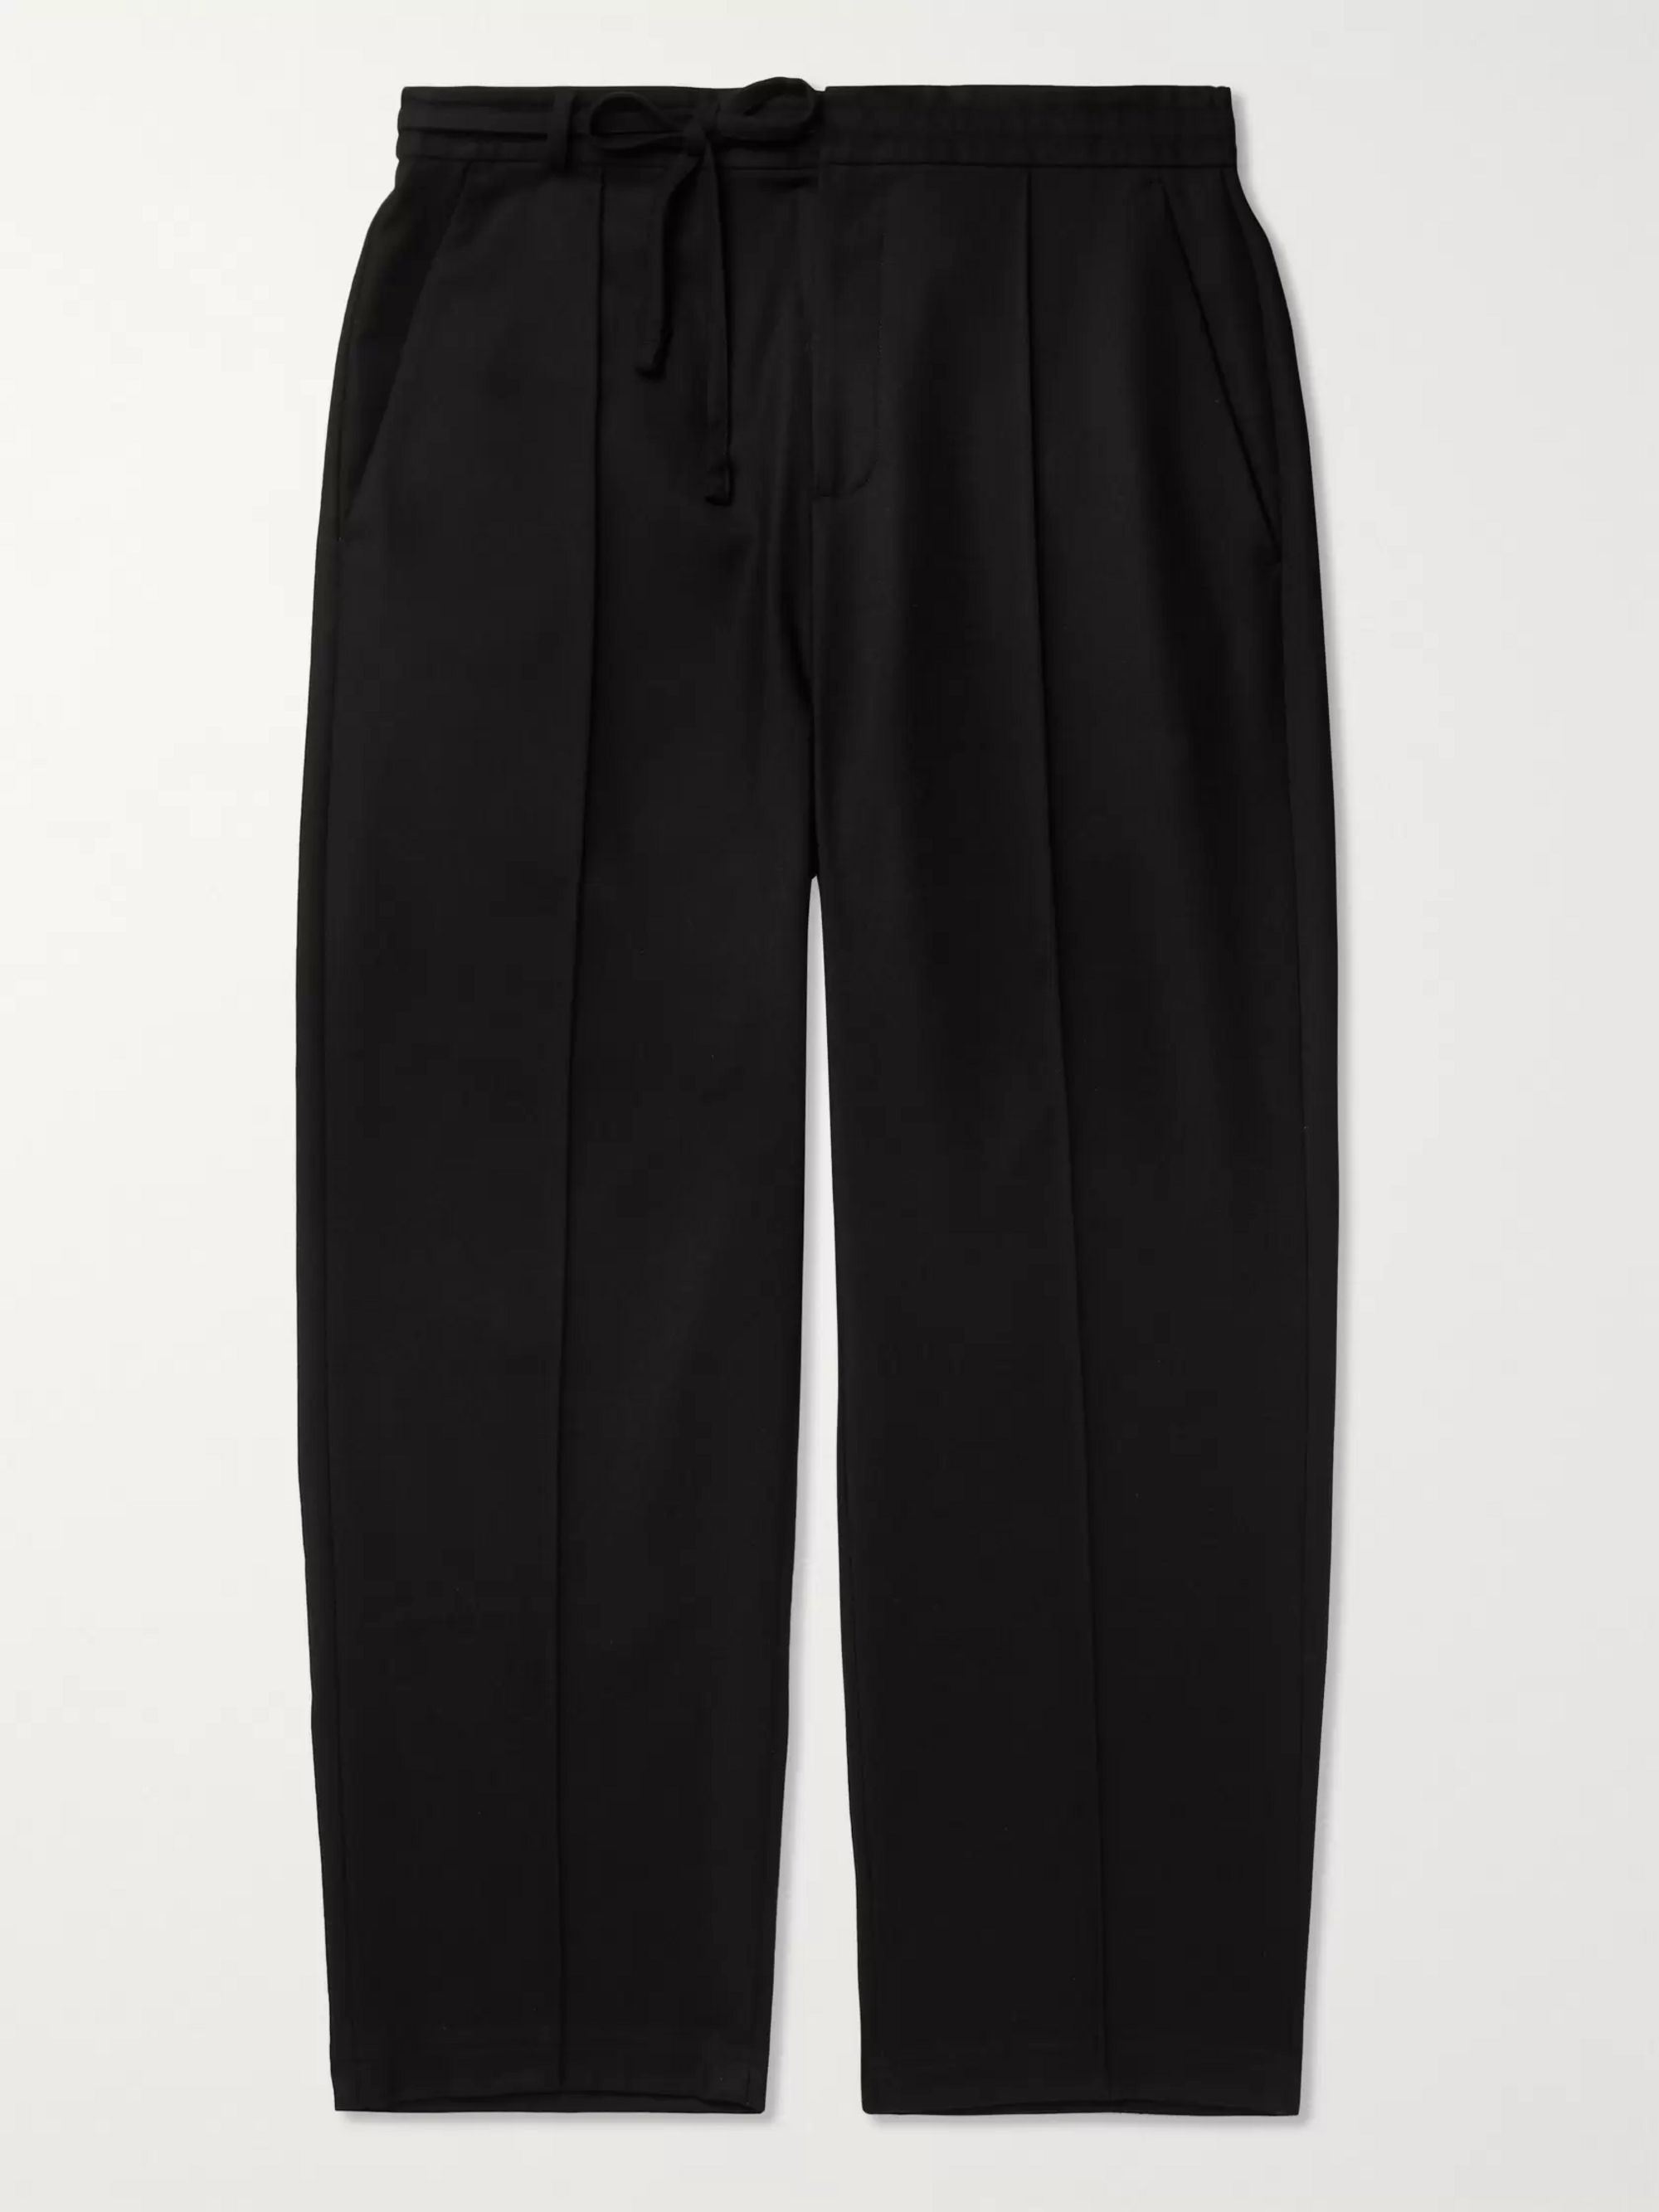 Maison Margiela Virgin Wool-Flannel Drawstring Trousers